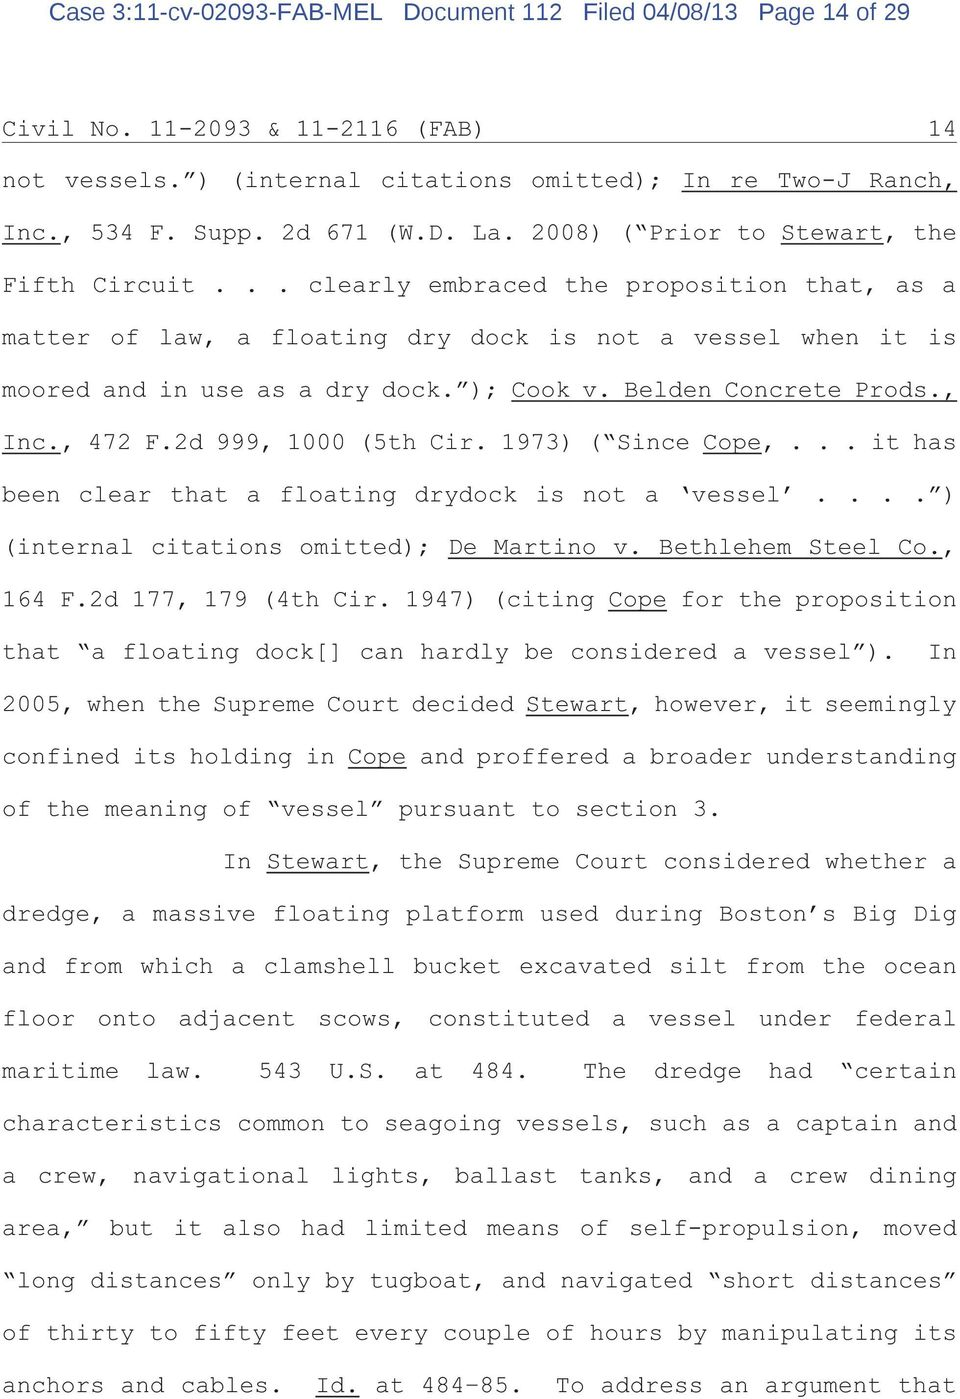 ); Cook v. Belden Concrete Prods., Inc., 472 F.2d 999, 1000 (5th Cir. 1973) ( Since Cope,... it has been clear that a floating drydock is not a vessel.... ) (internal citations omitted); De Martino v.